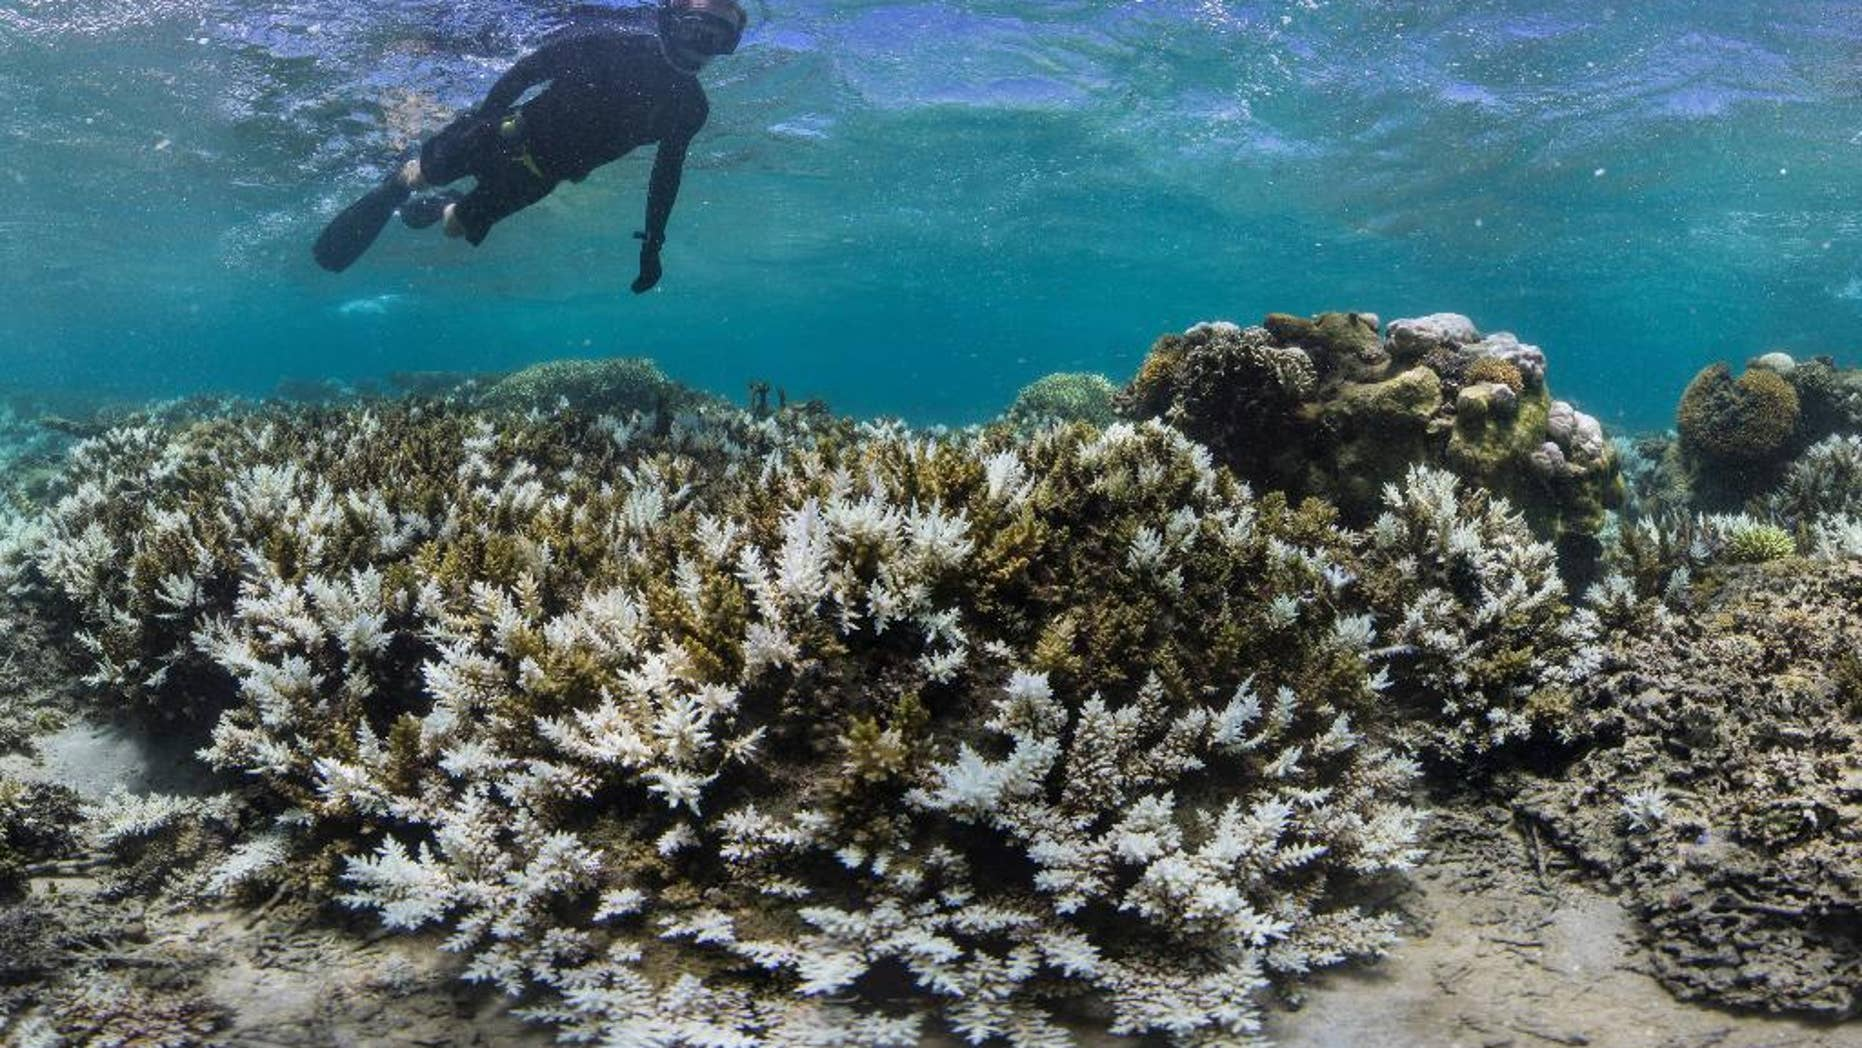 In this March 2016 photo released by The Ocean Agency/Reef Explorer Fiji, a snorkeler swims above coral that has bleached white due to heat stress in Fiji. (Victor Bonito/The Ocean Agency /Reef Explorer Fiji via AP)